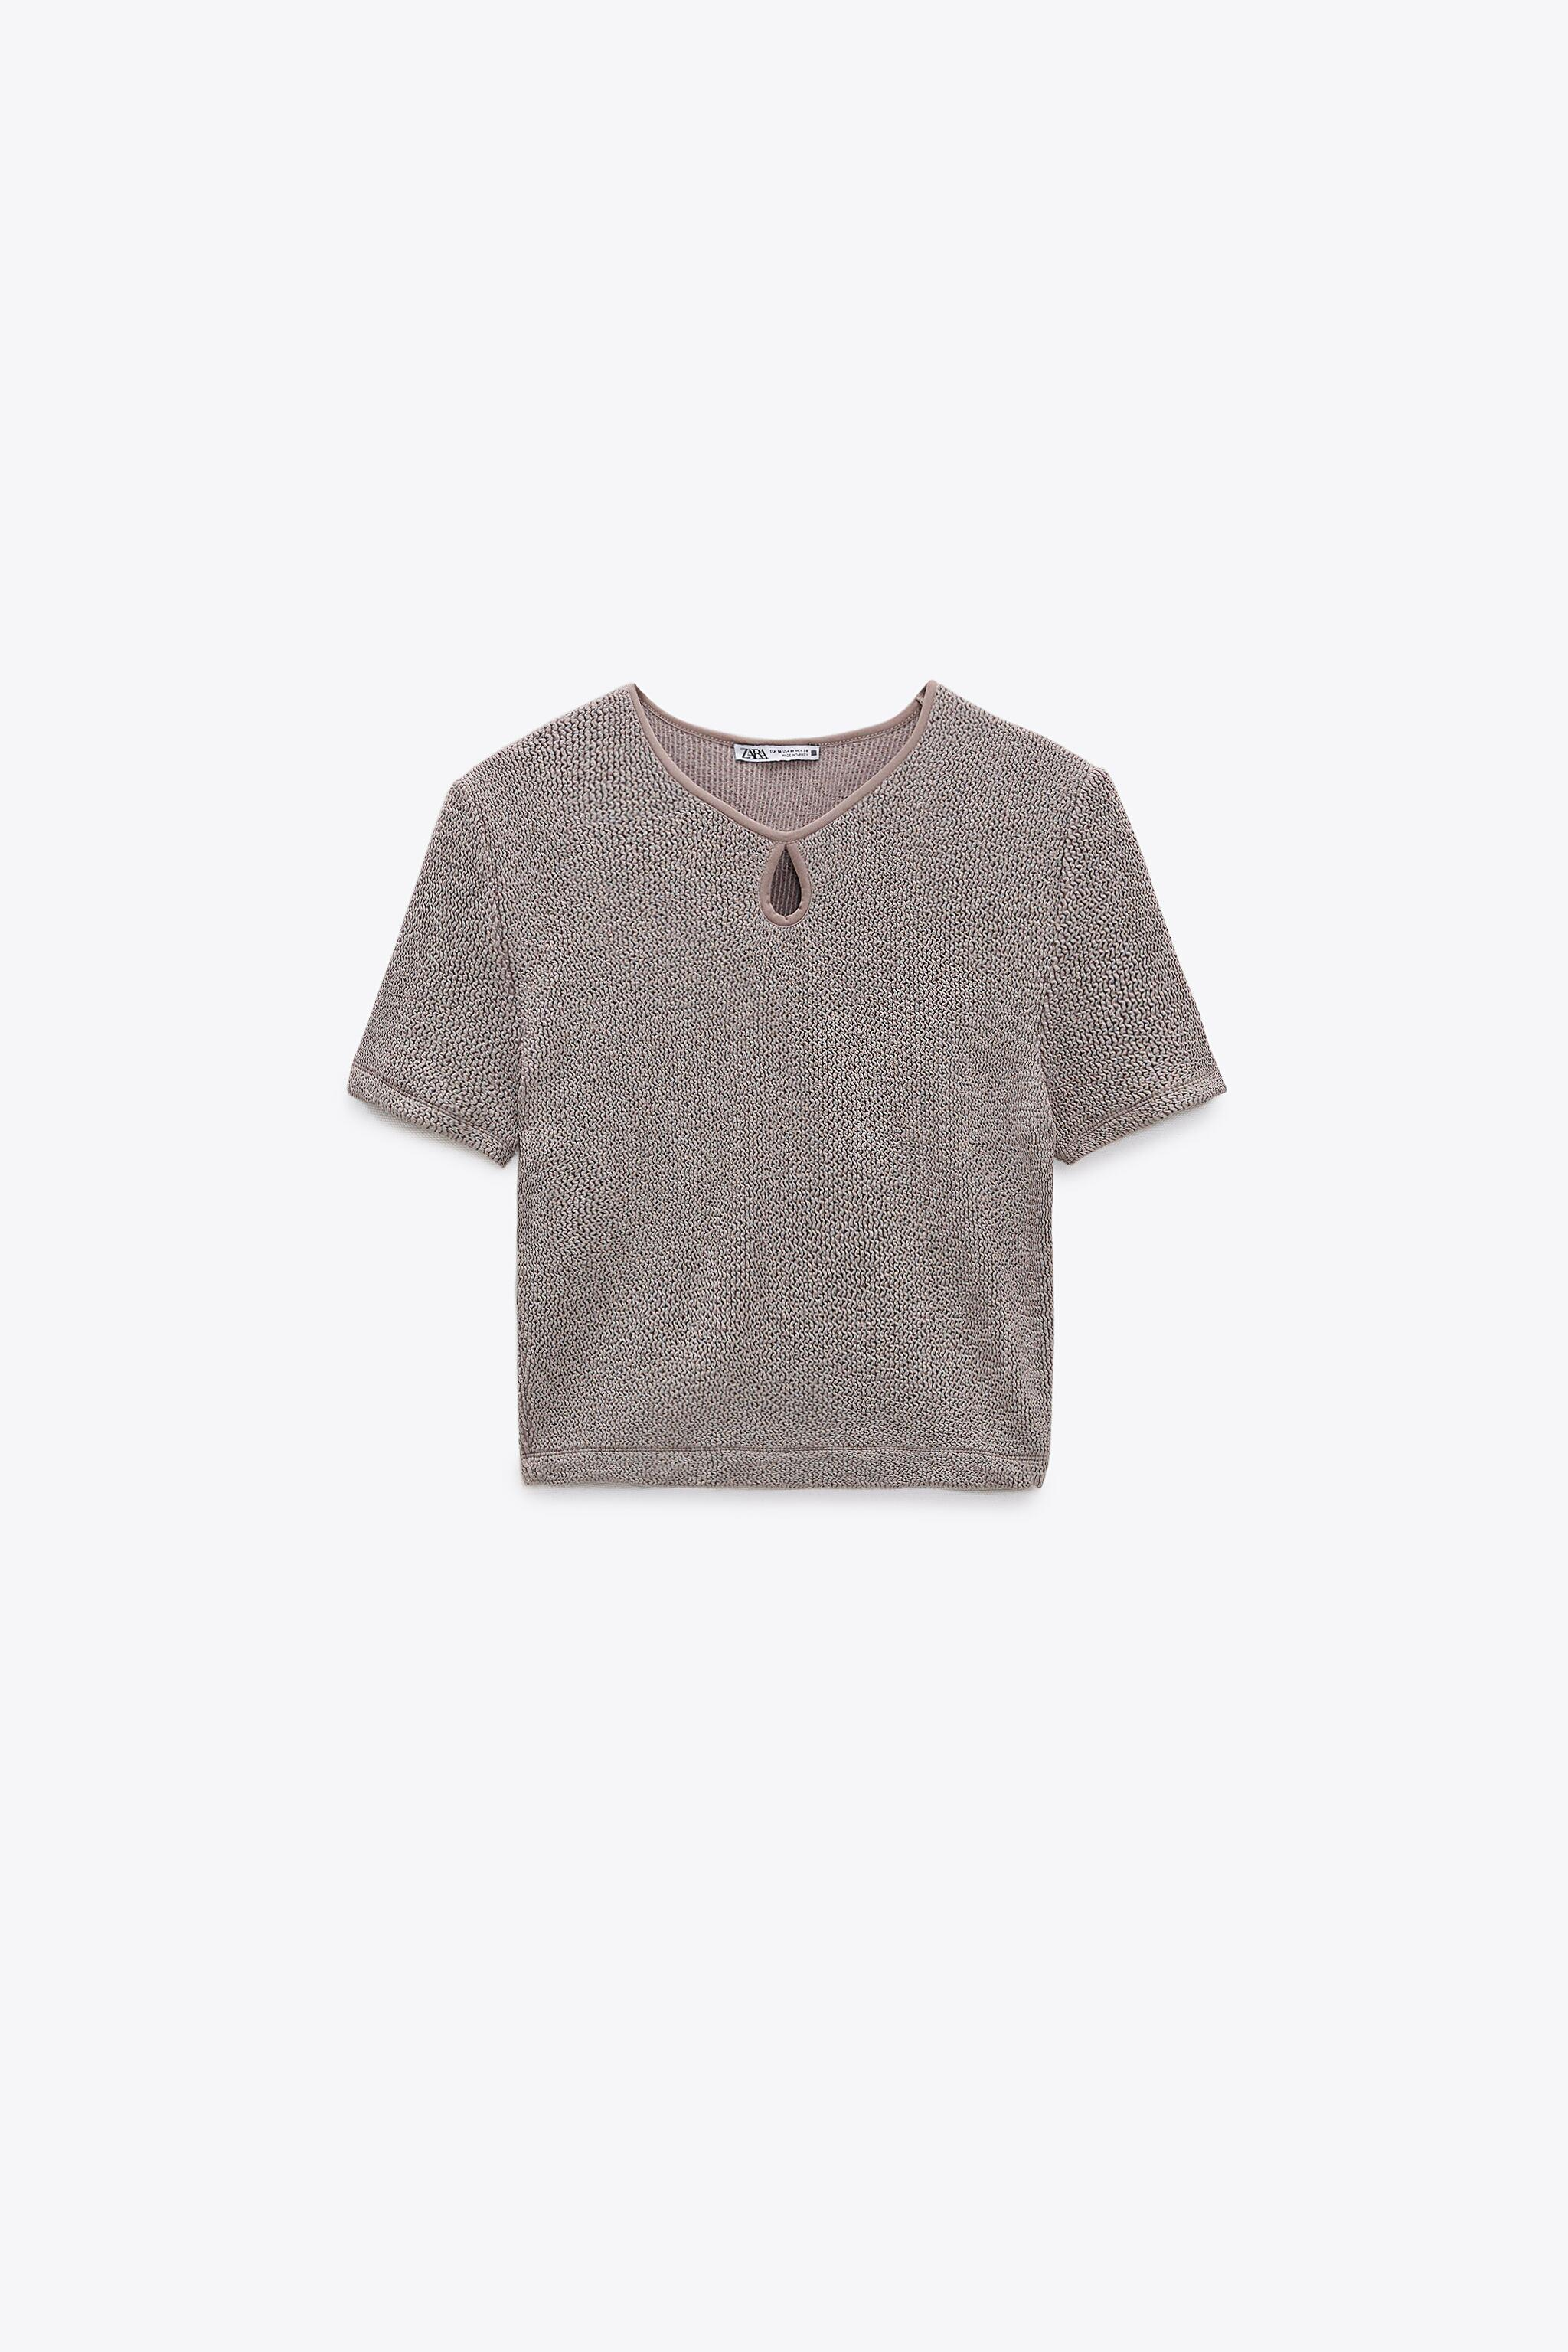 CROPPED TEXTURED WEAVE SHIRT 3